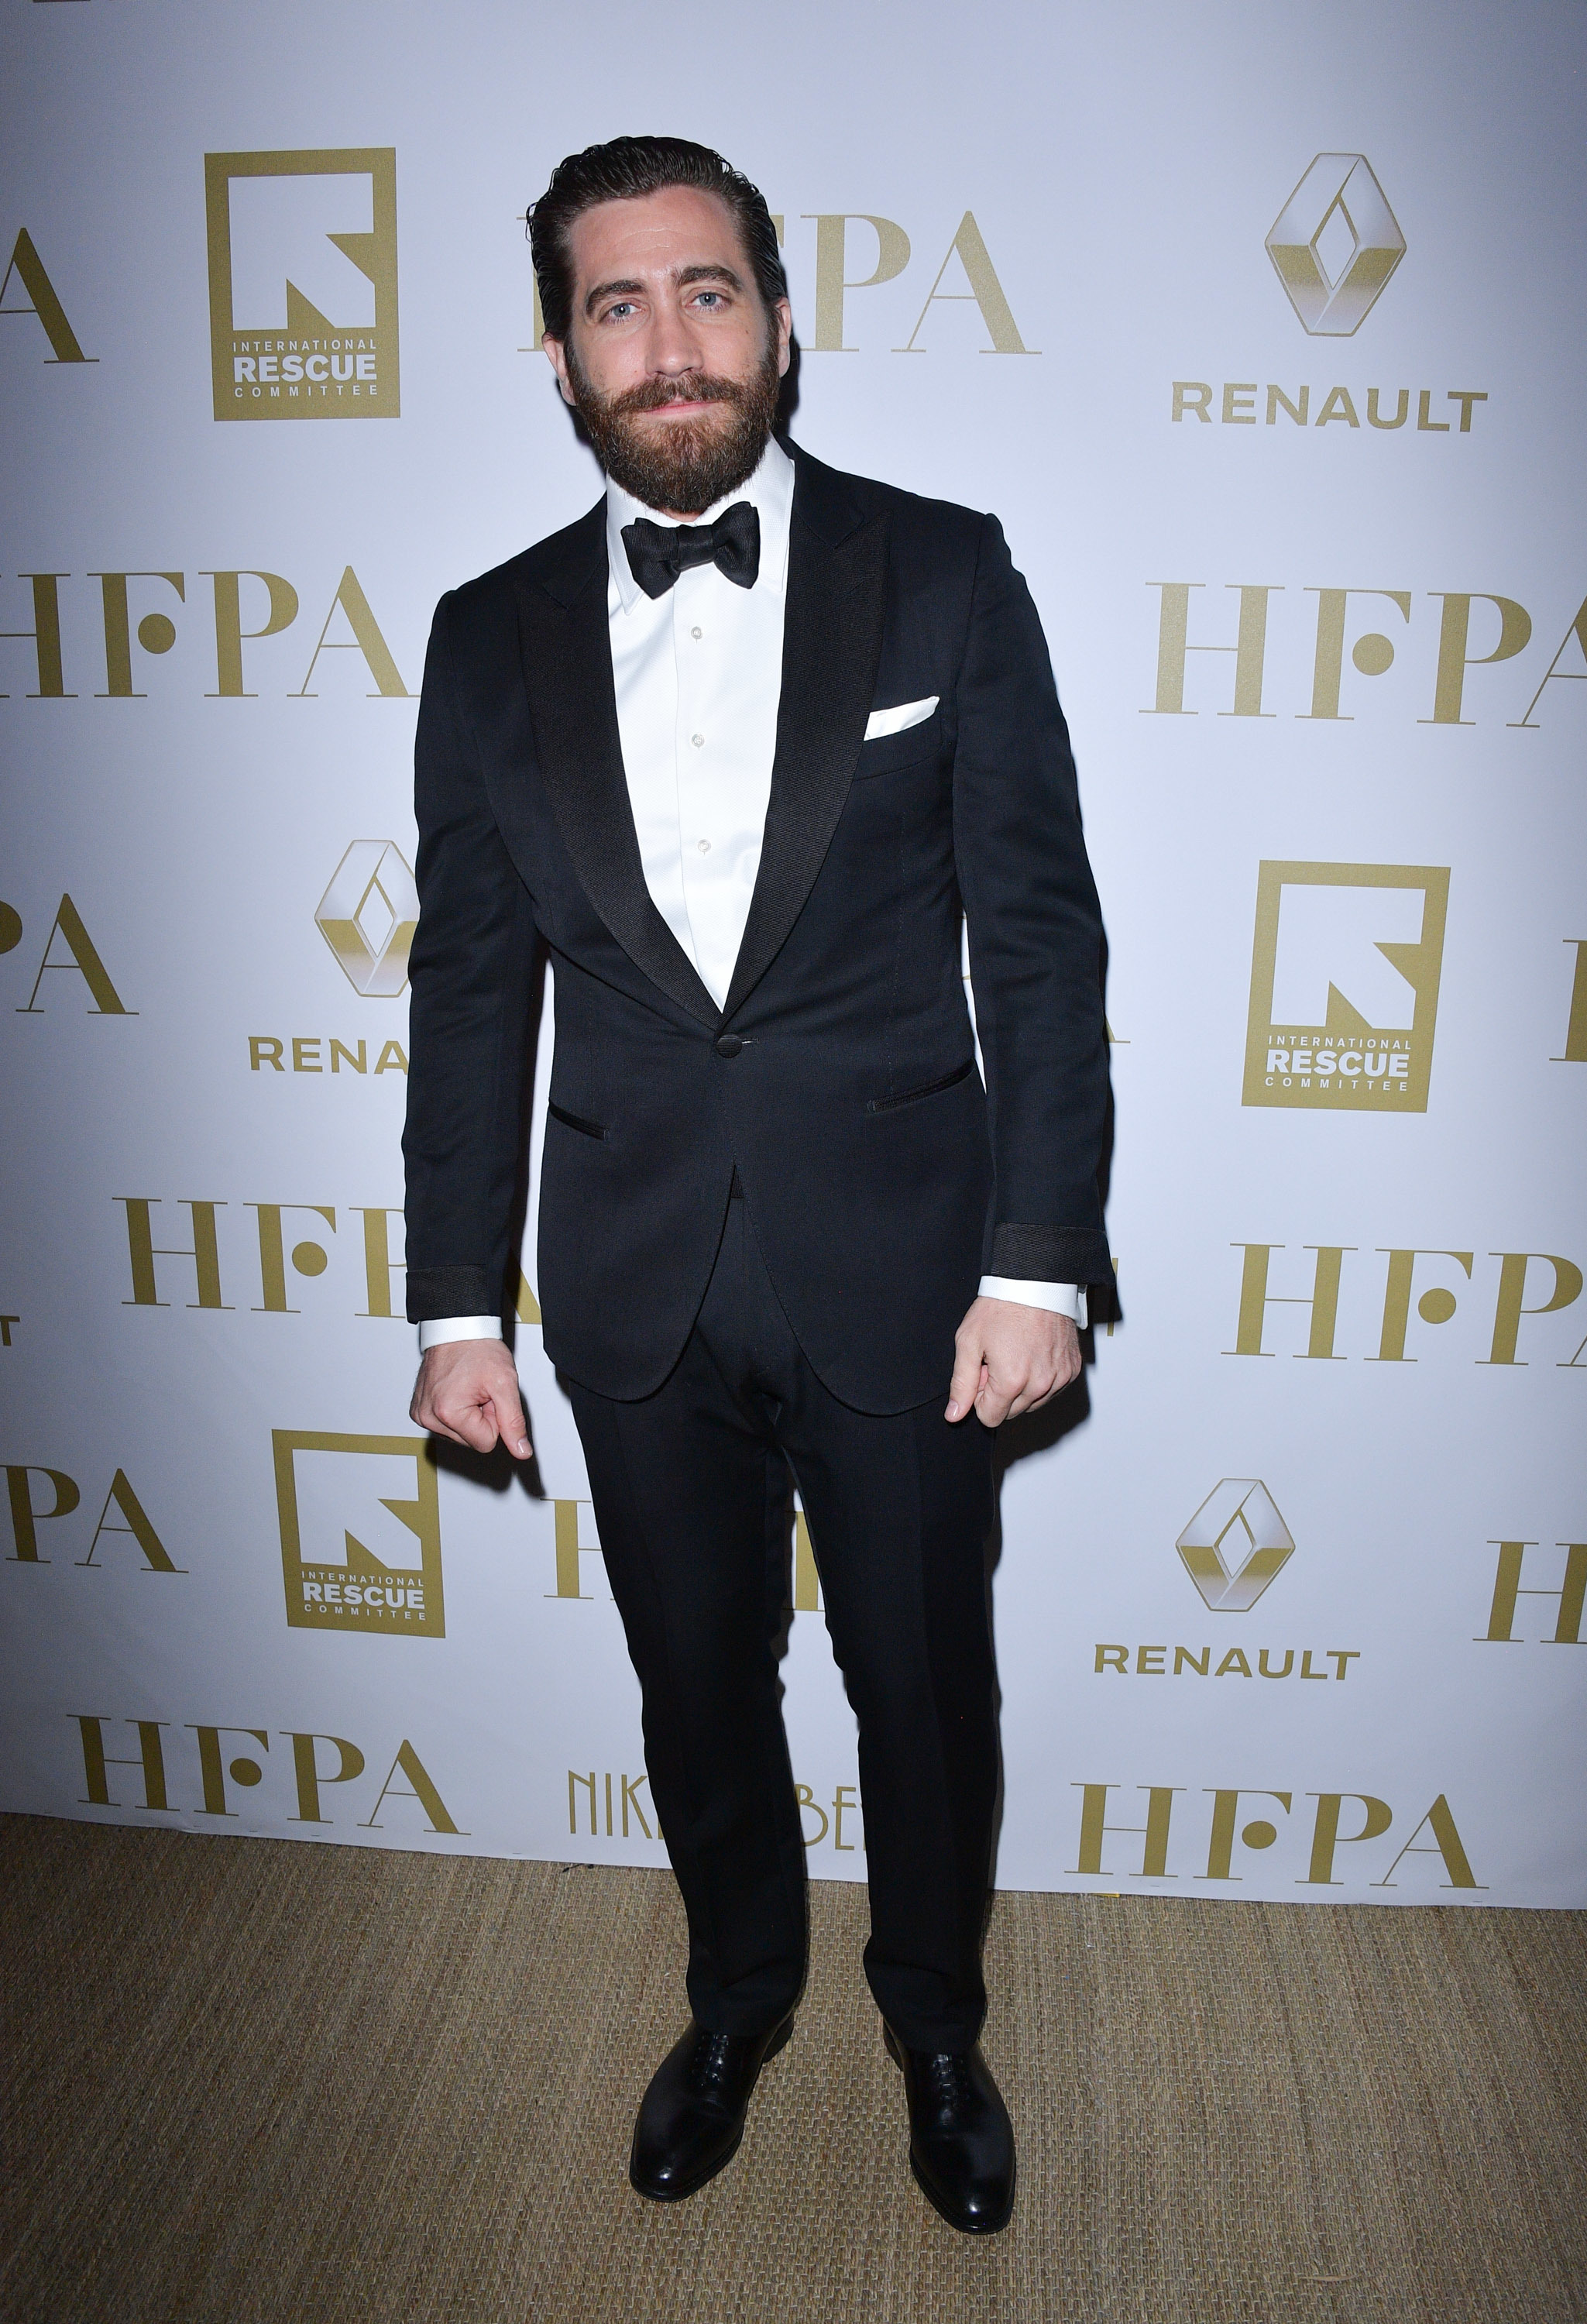 Jake Gyllenhaal attends the Hollywood Foreign Press Association's philanthropic celebration in support of the International Rescue Committee and presented by Renault Nissan Alliance during the 70th Cannes Film Festival at Nikki Beach at the InterContinental Carlton in France on May 21, 2017.